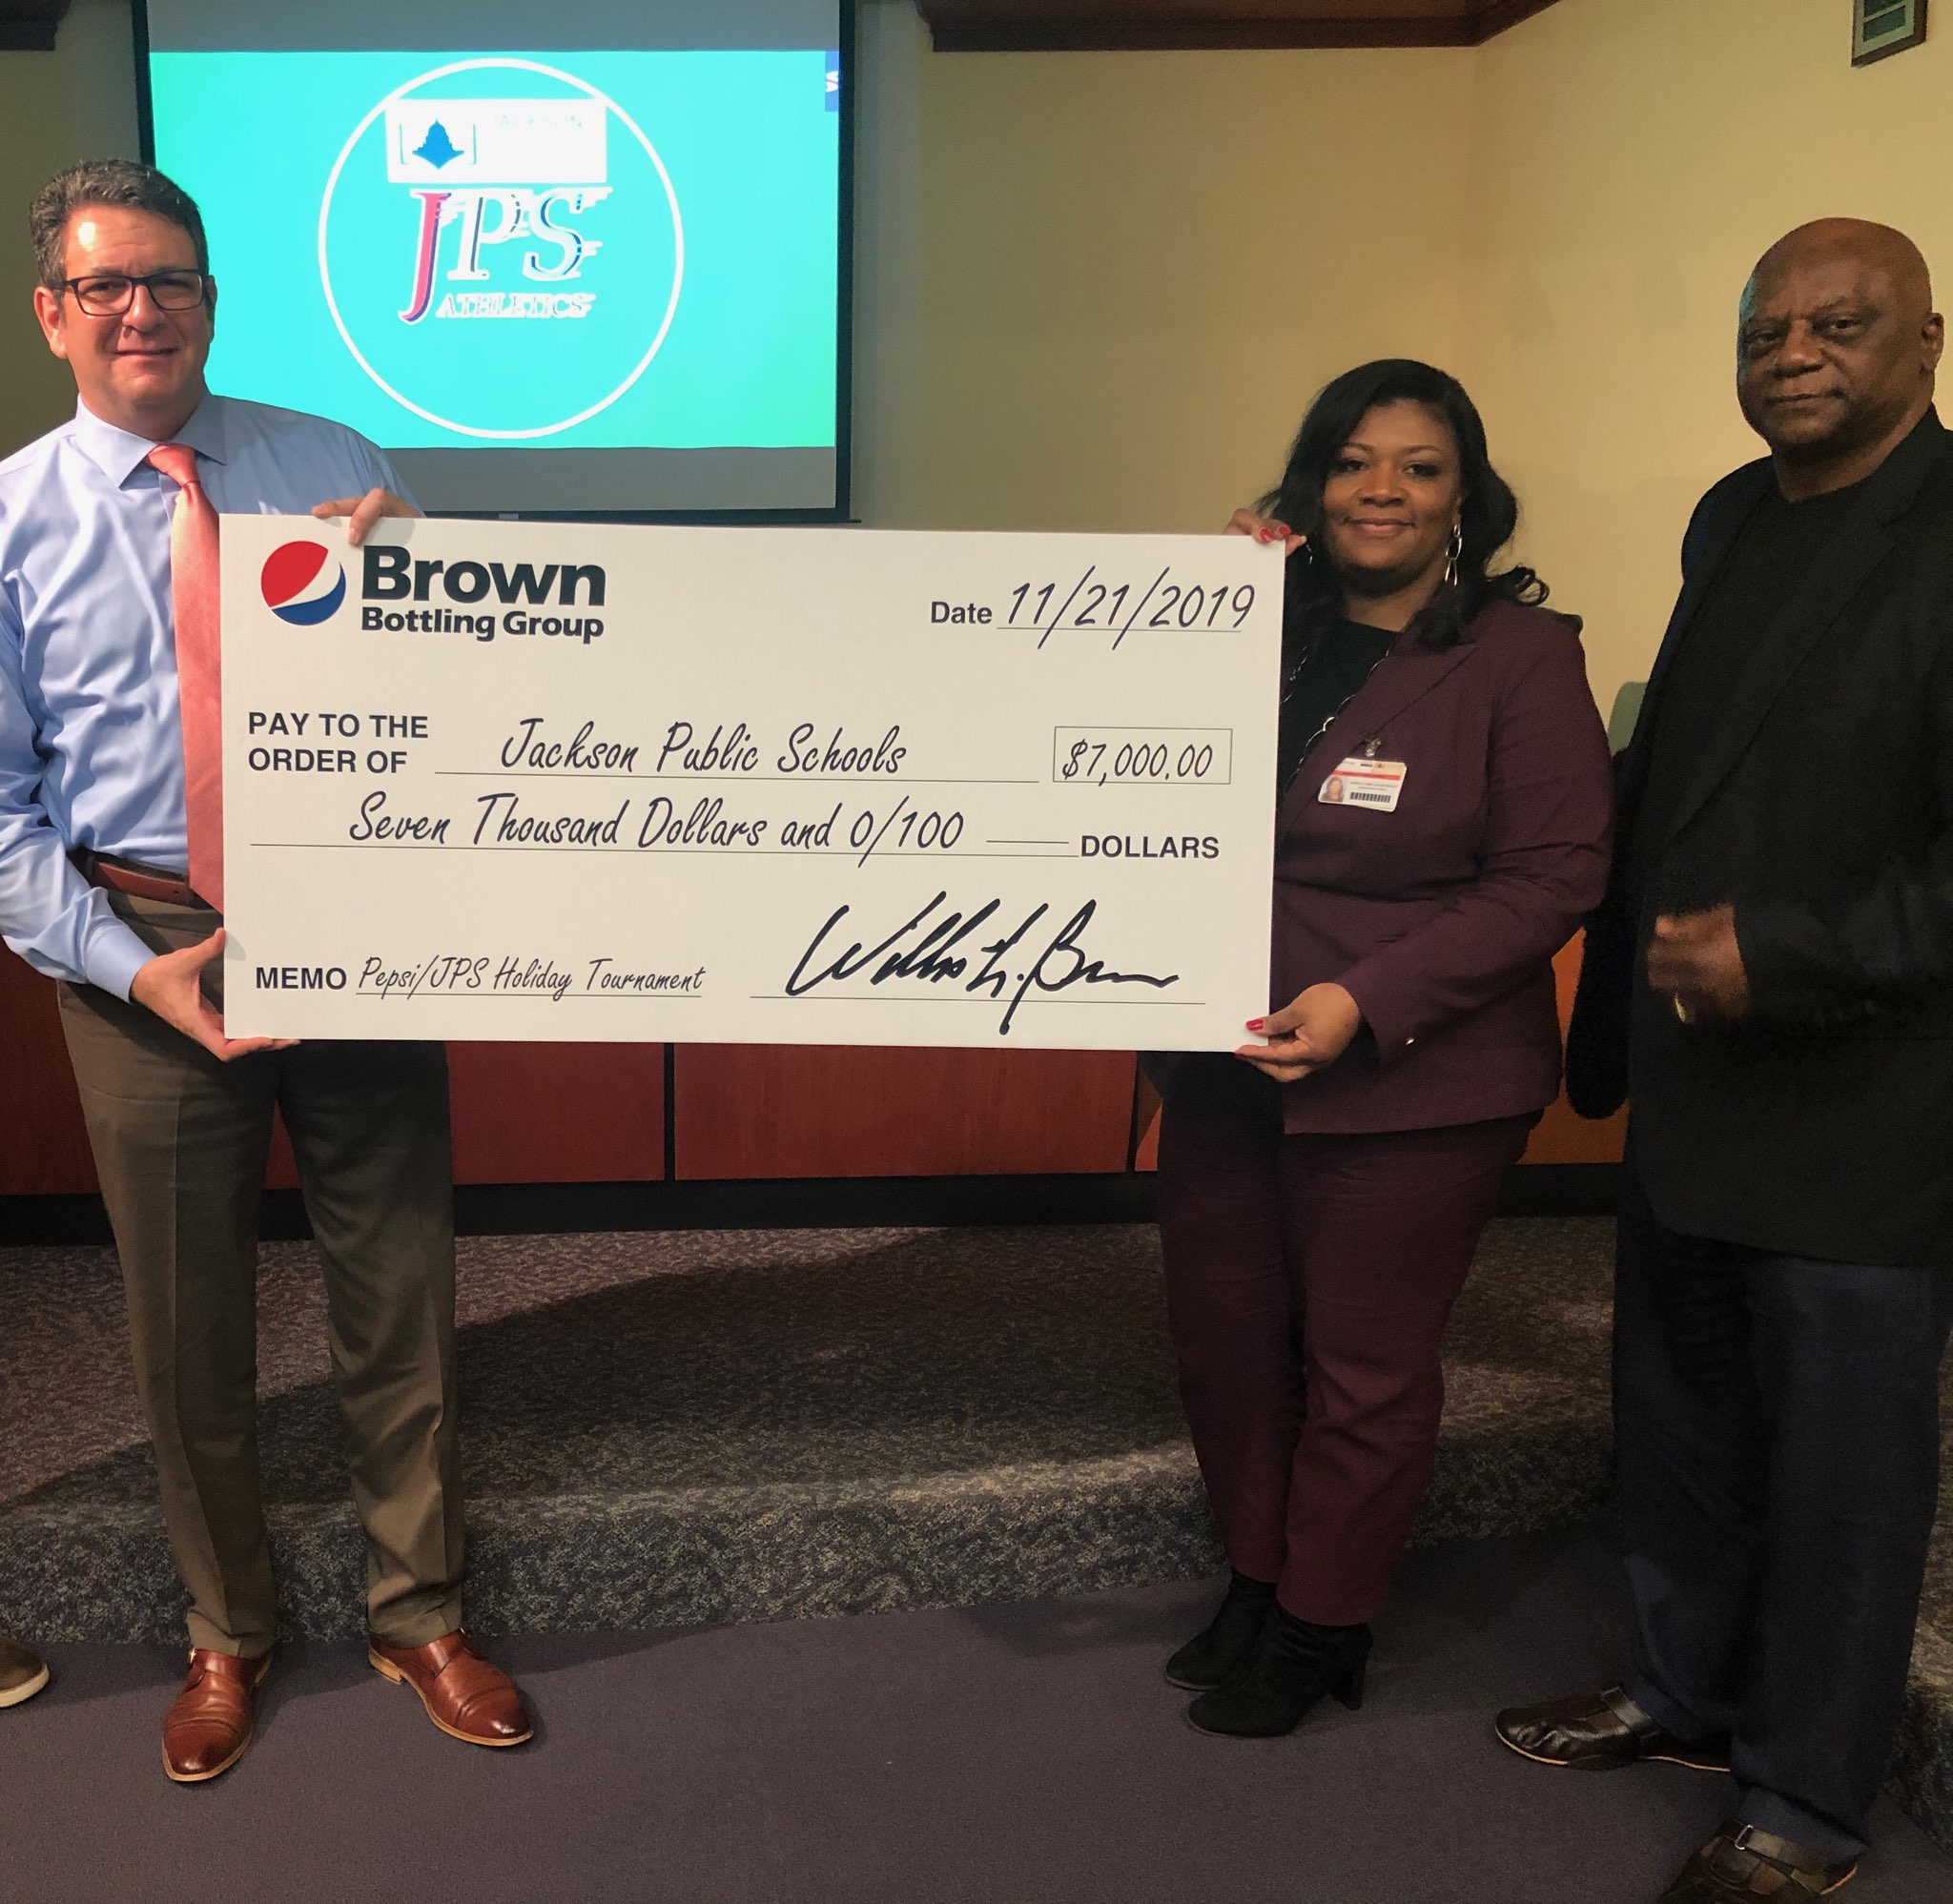 A Brown Bottling representative presents the 2019 sponsorship check for the Pepsi/JPS Holiday Tournament to representatives with Jackson Public Schools.